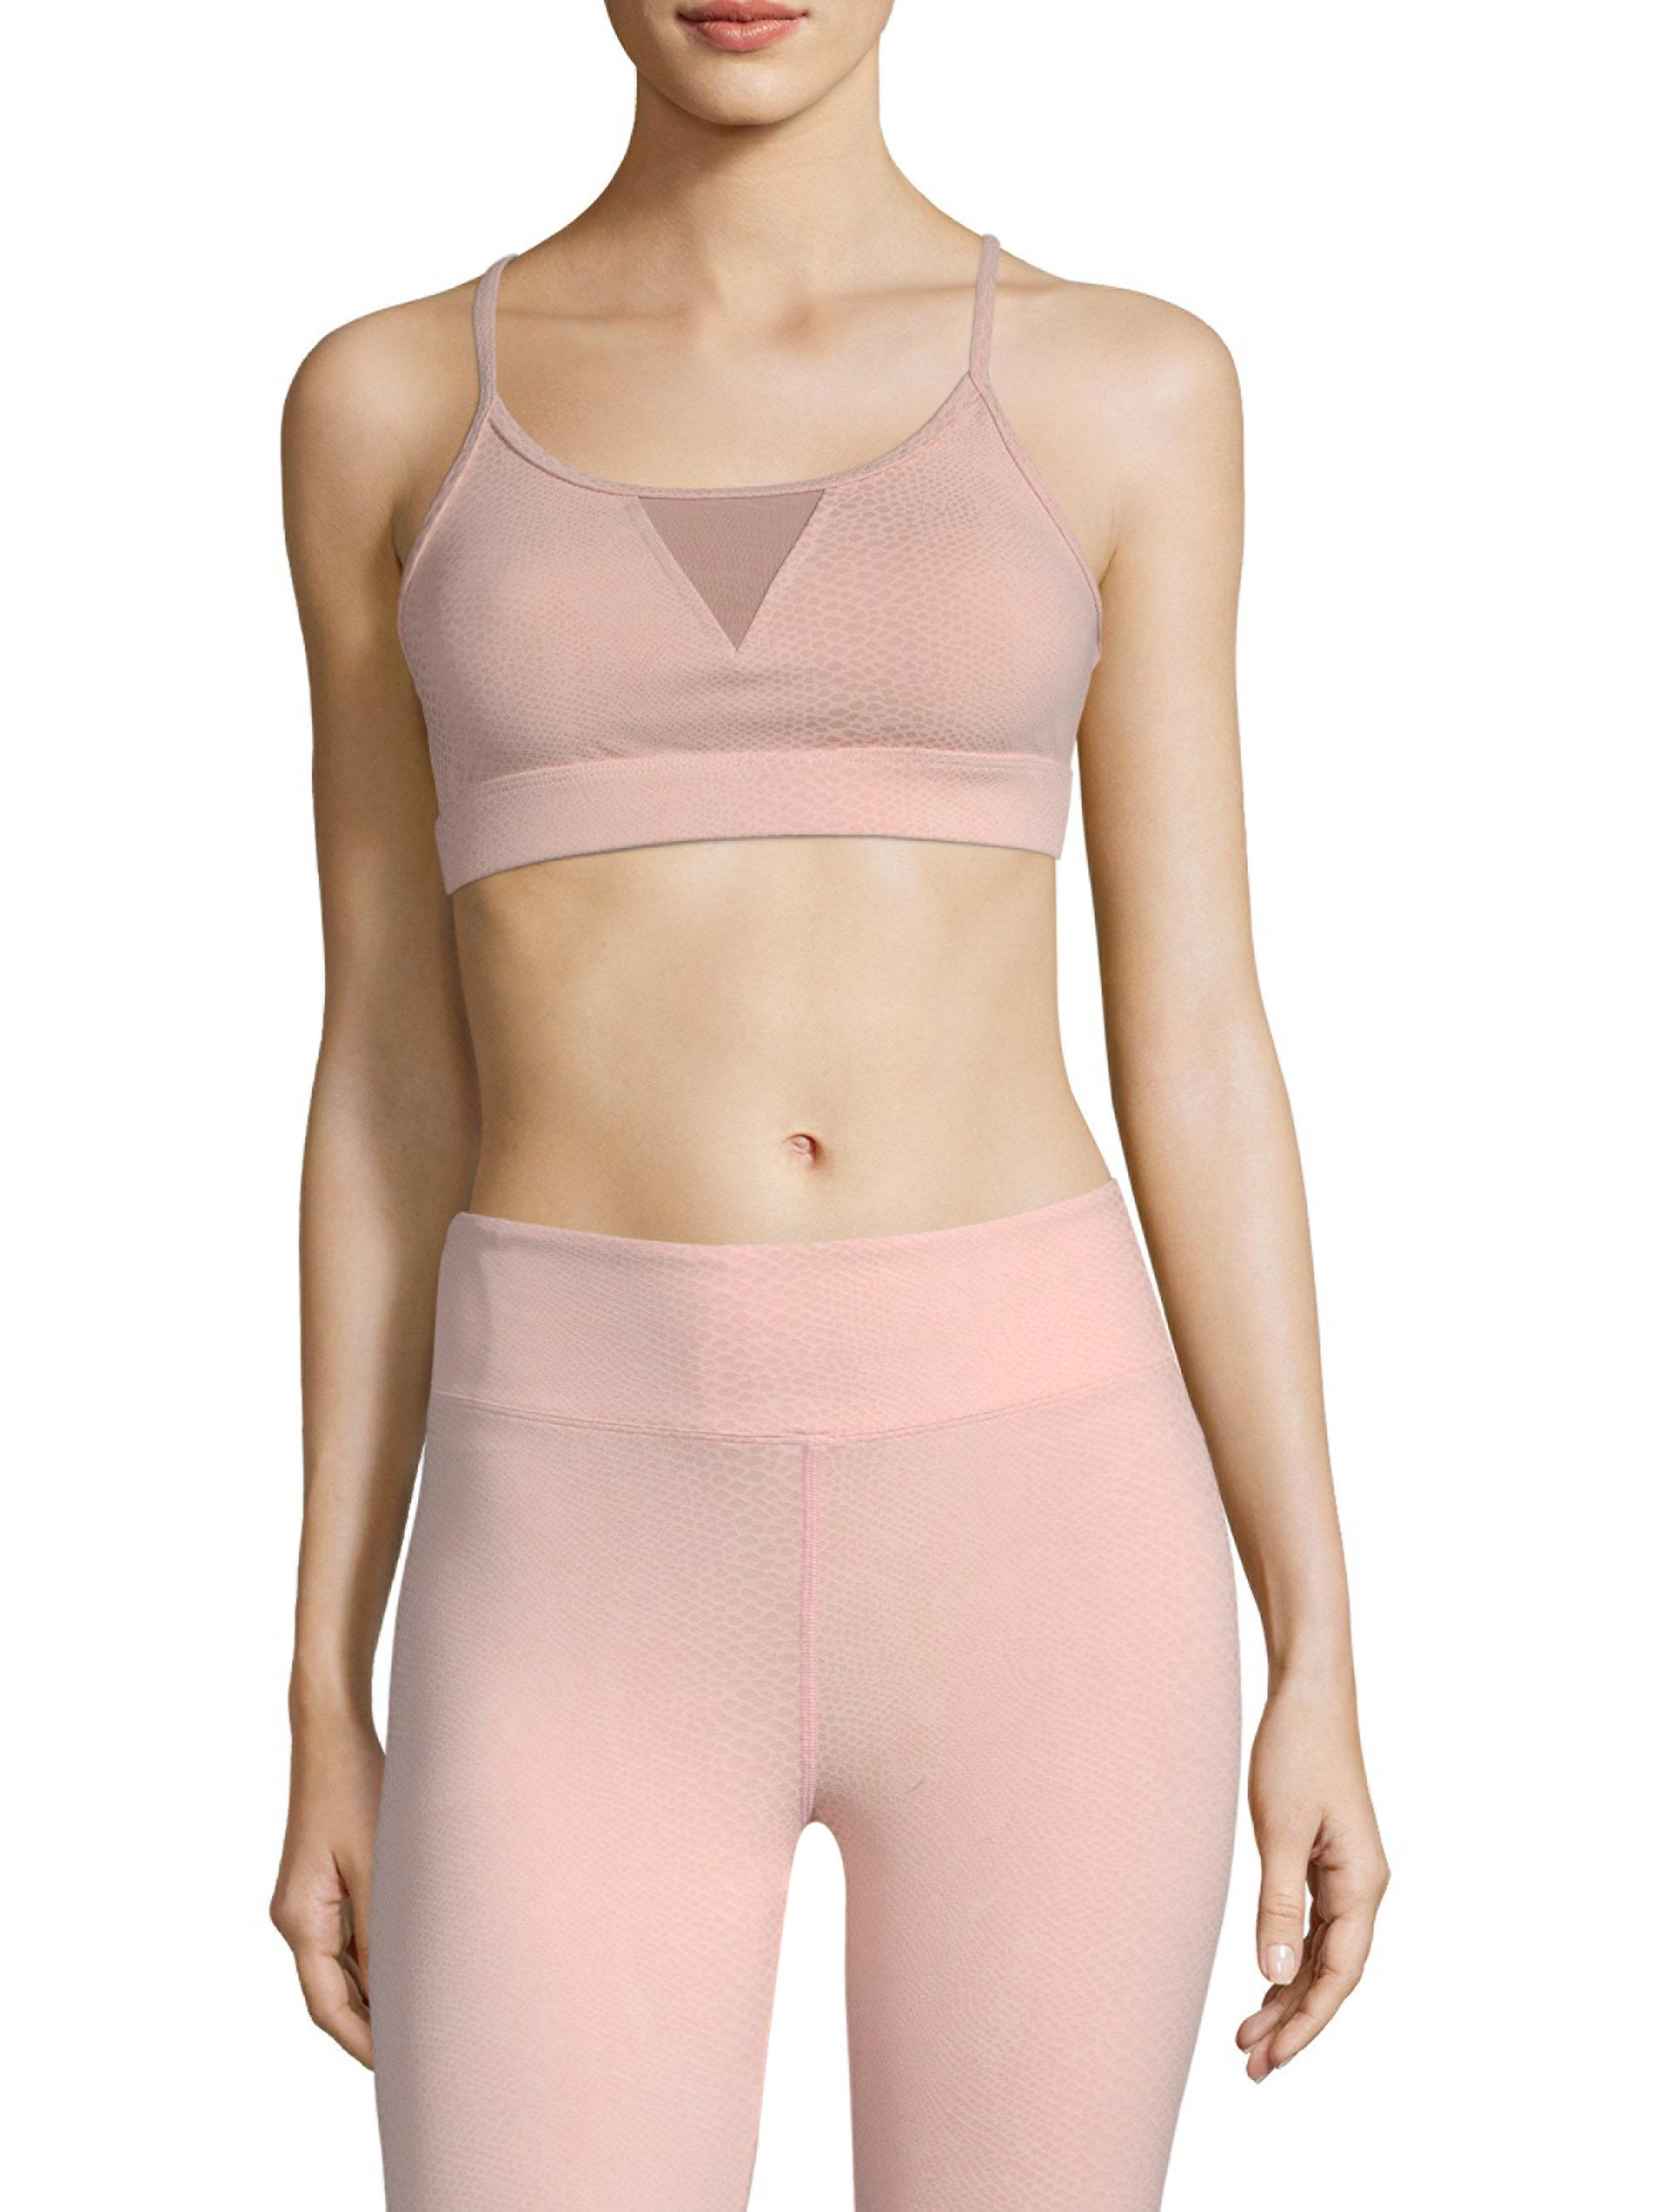 1d409dce4b Koral Trifecta Sports Bra in Pink - Lyst